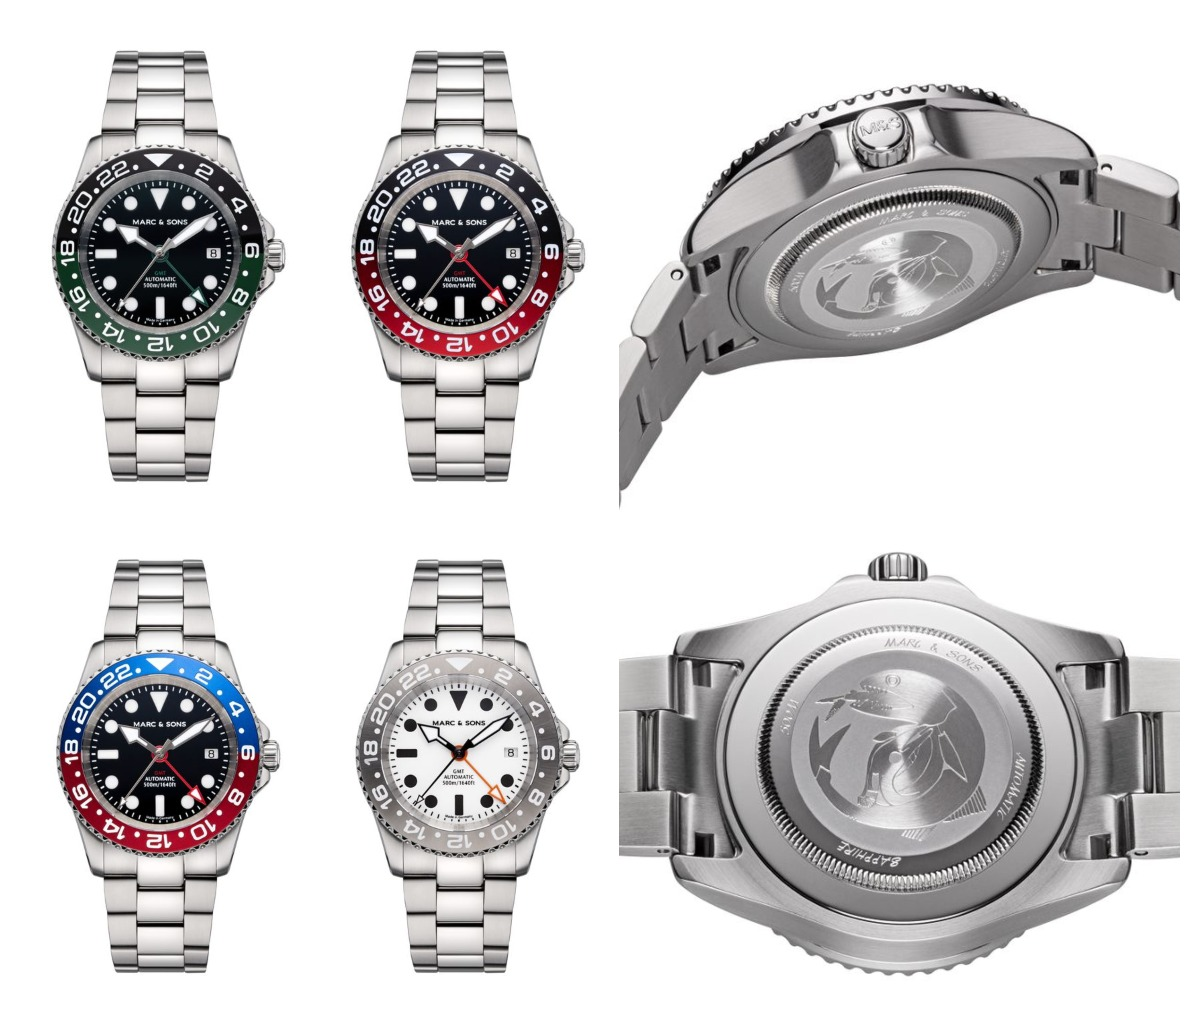 The Mark and Sons Diver watch Automatic GMT models MSG-007-2-OL-S (black-green), MSG-007-5-OL-S (black-red), MSG-007-7-OL-S (blue-red) and MSG-007-8-OL-S (white) Credits: Mark and sons